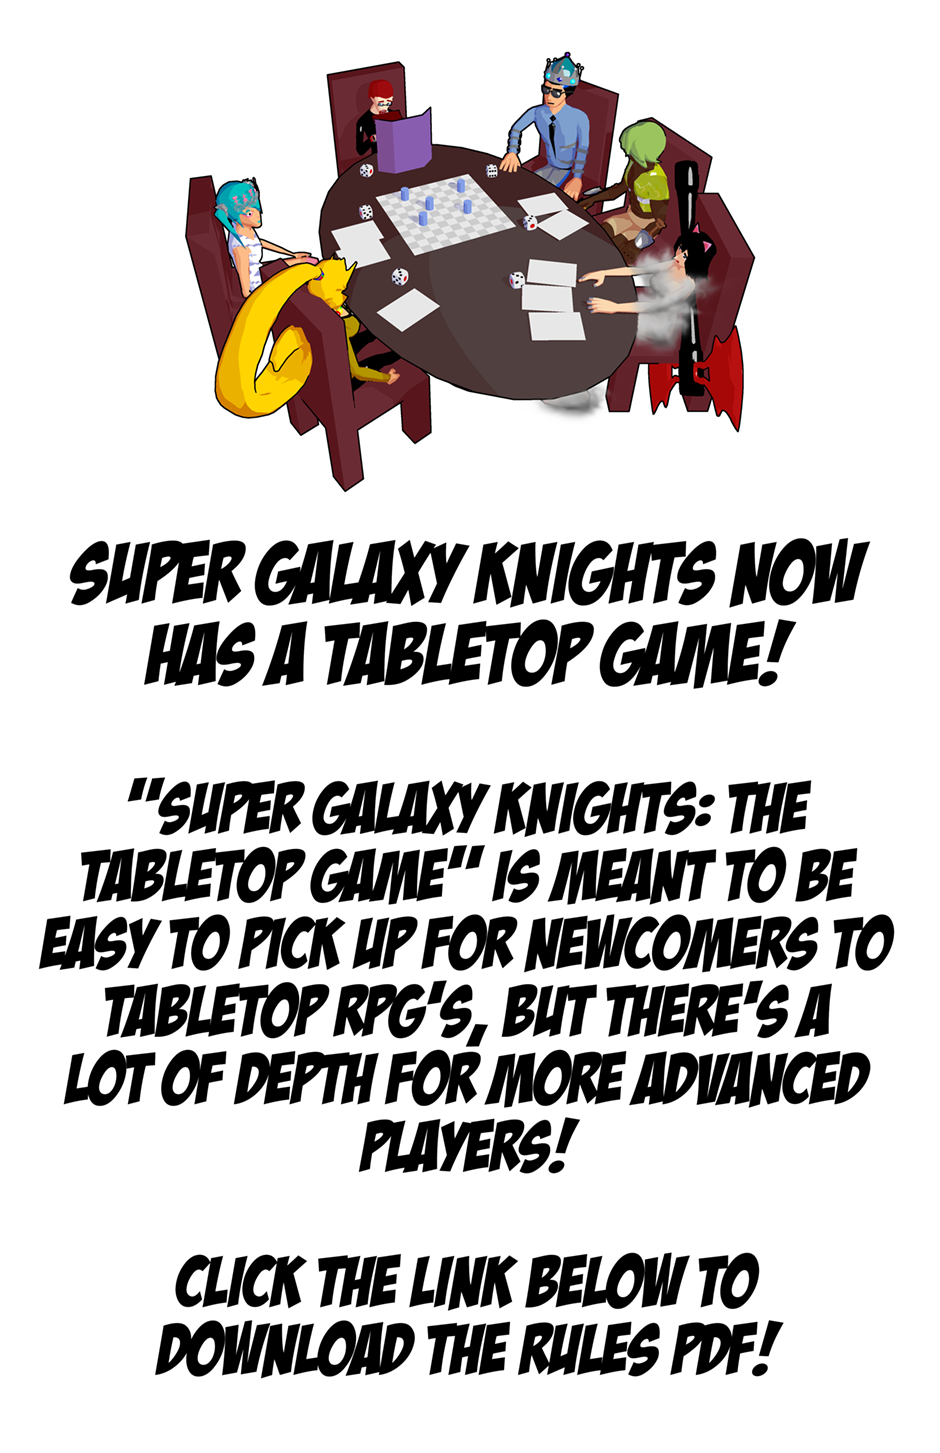 Super Galaxy Knights: The Tabletop Game!